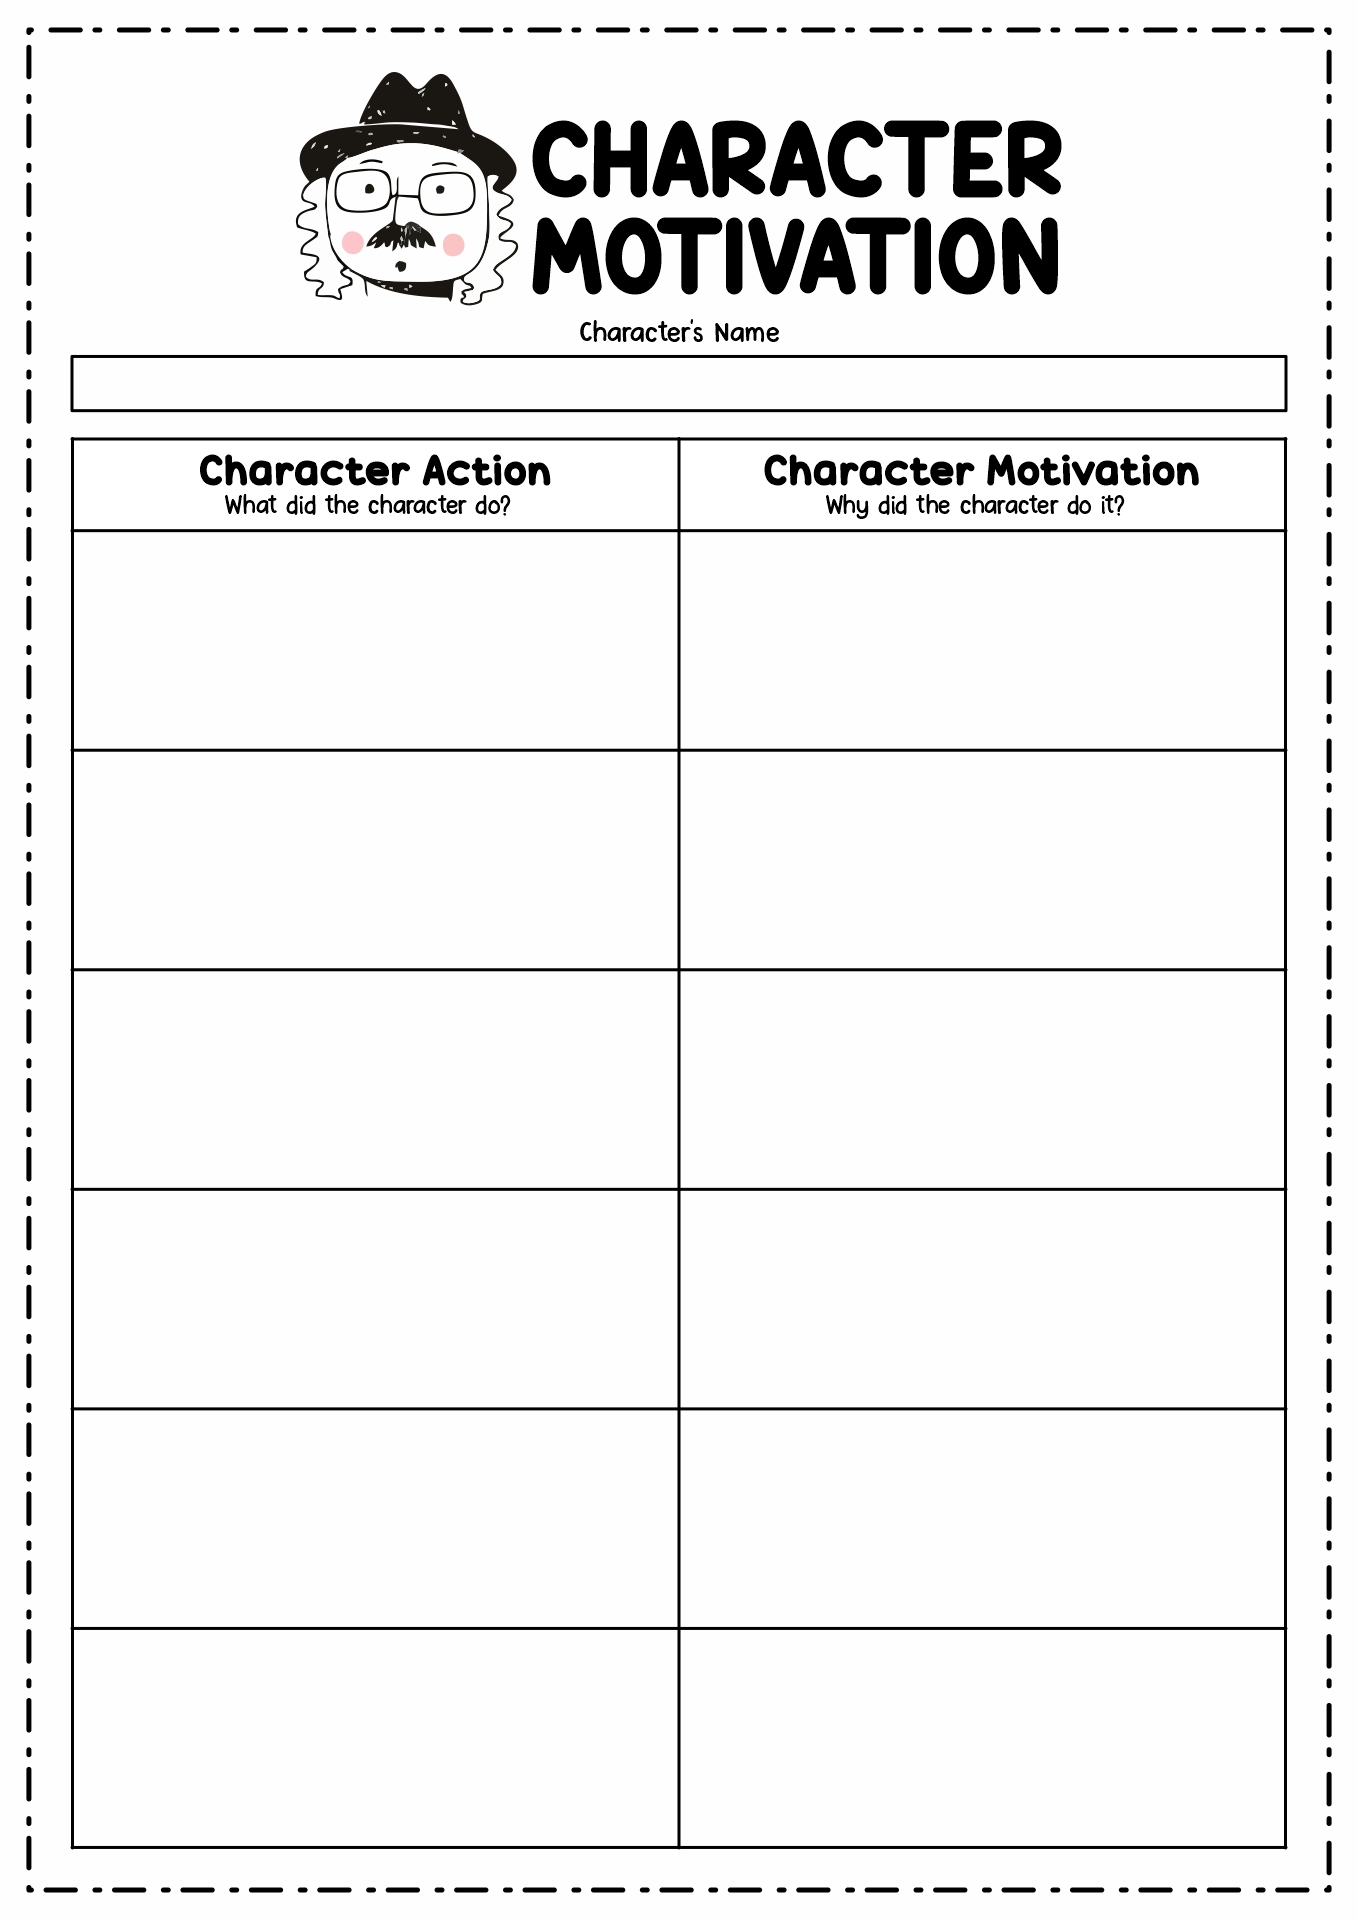 Motivation Worksheet For